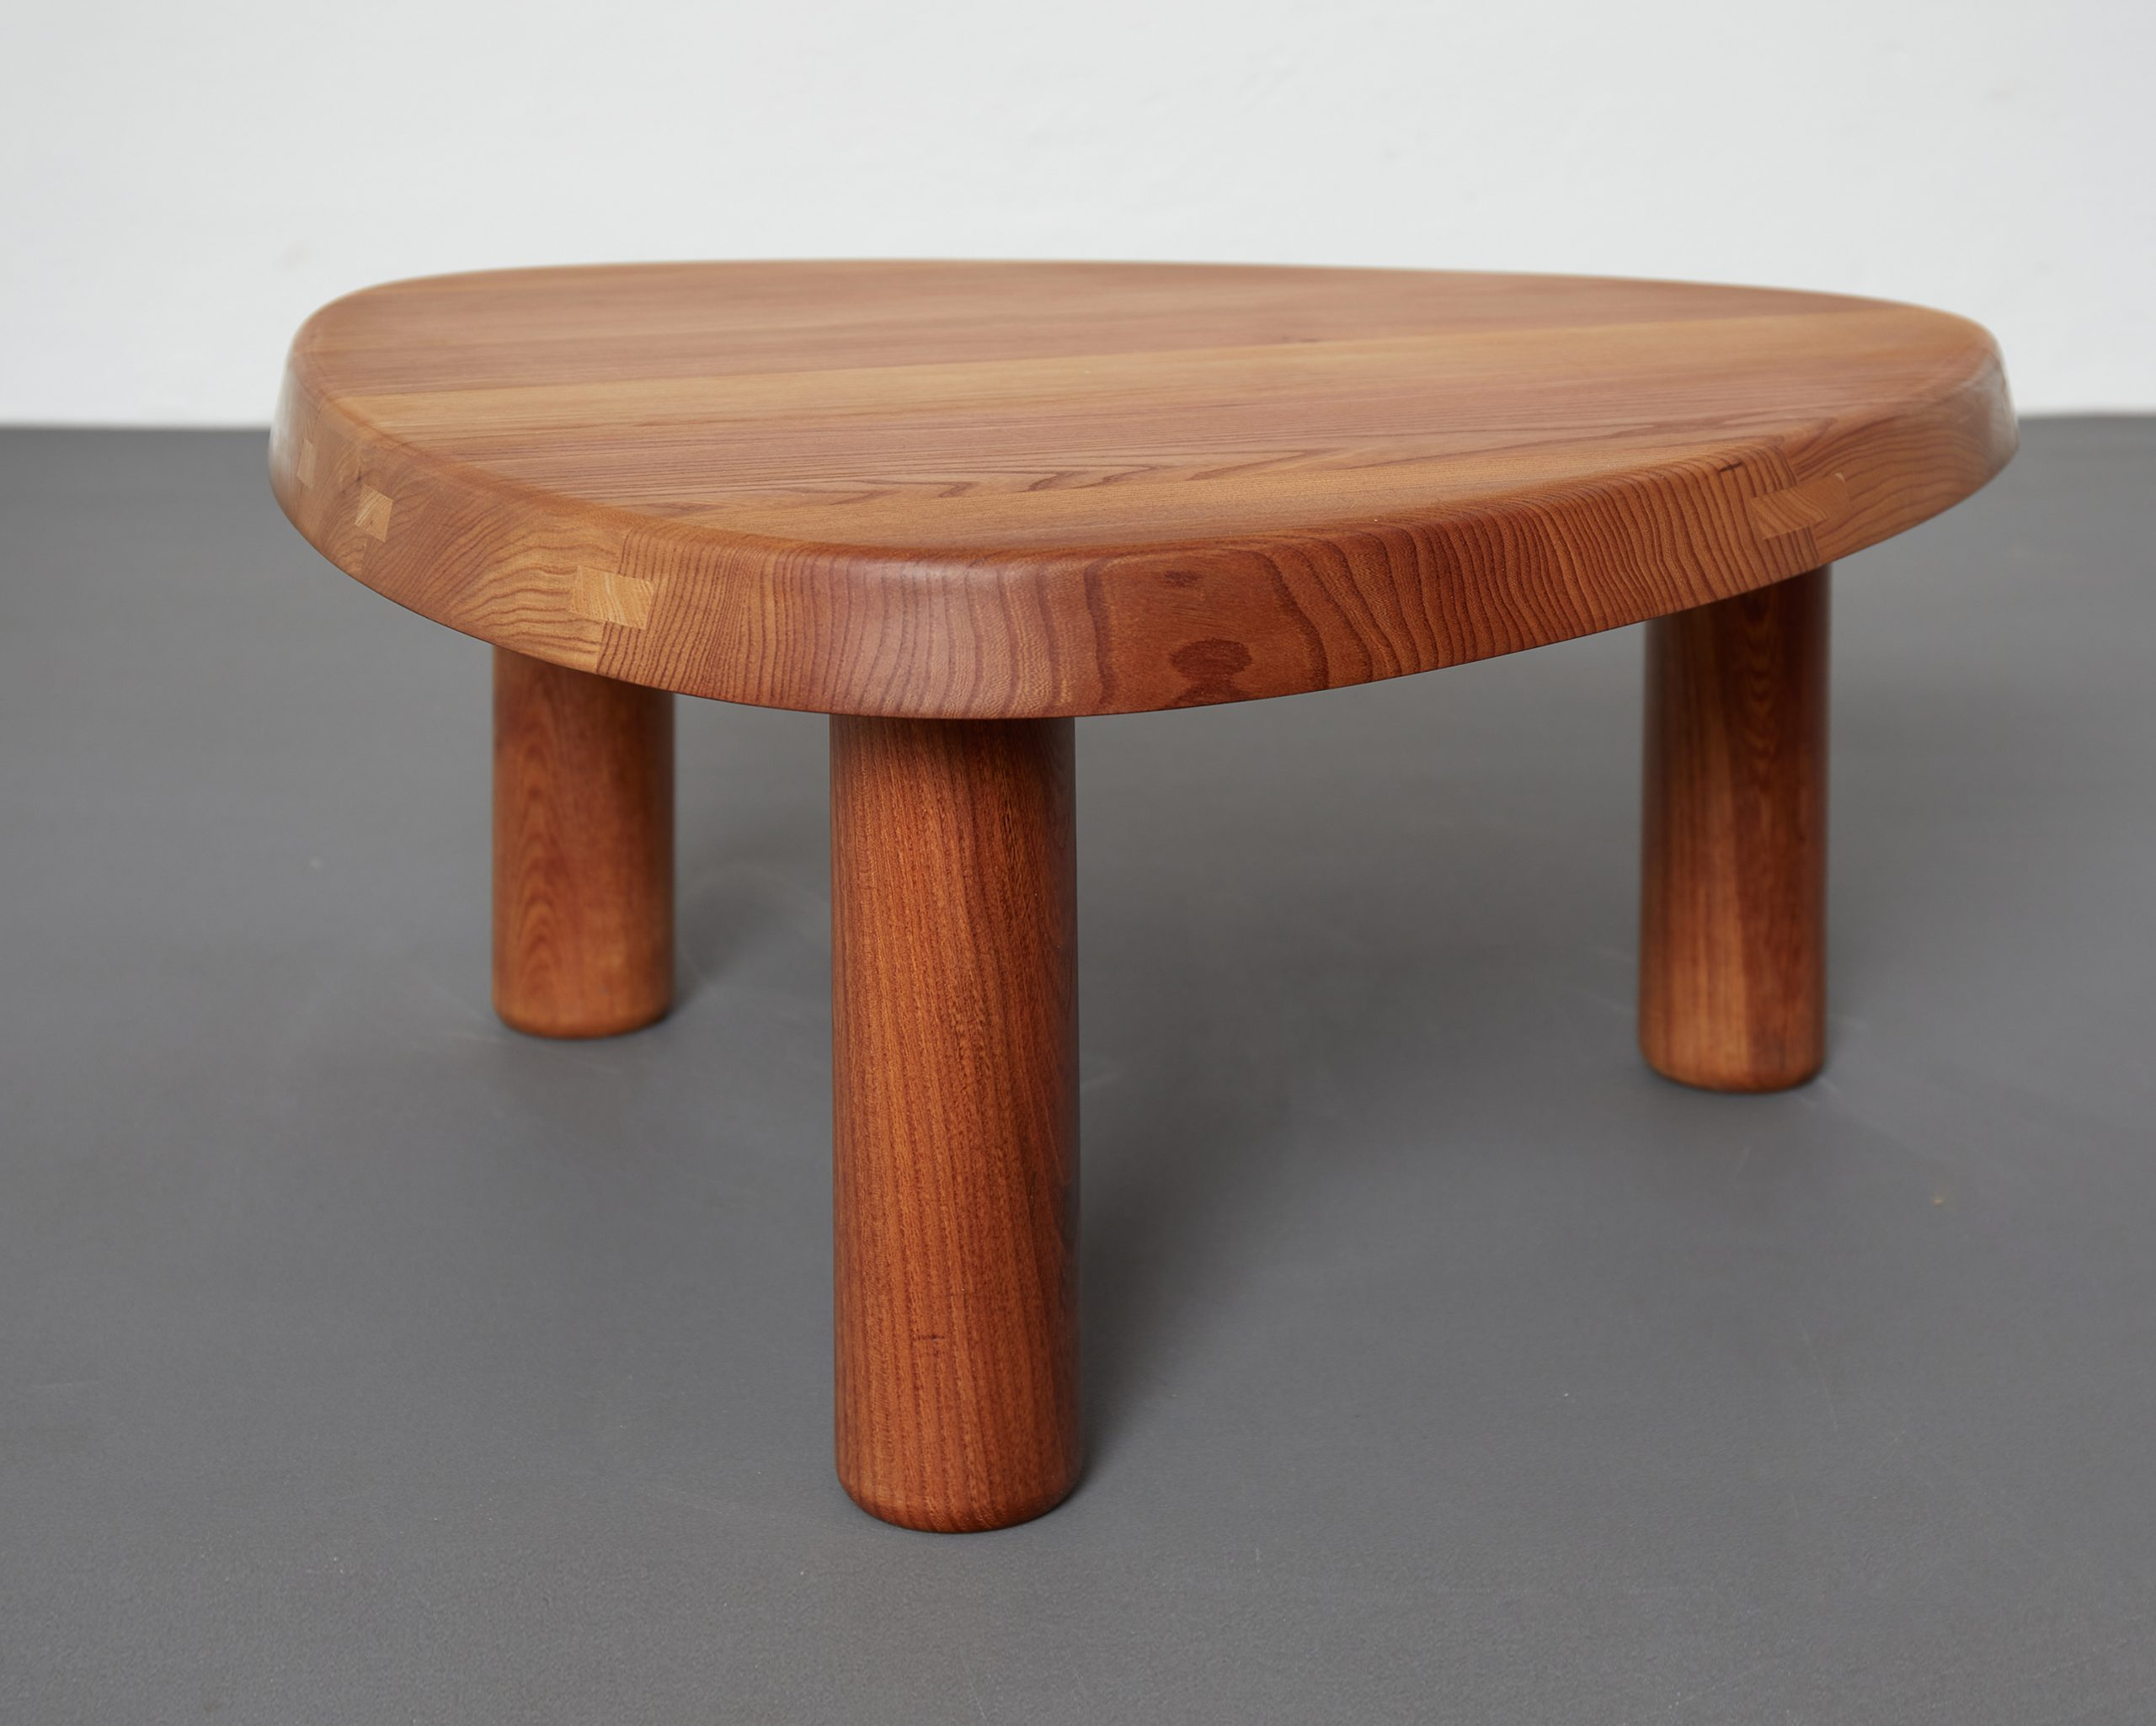 t23-table-by-pierre-chapo-image-05